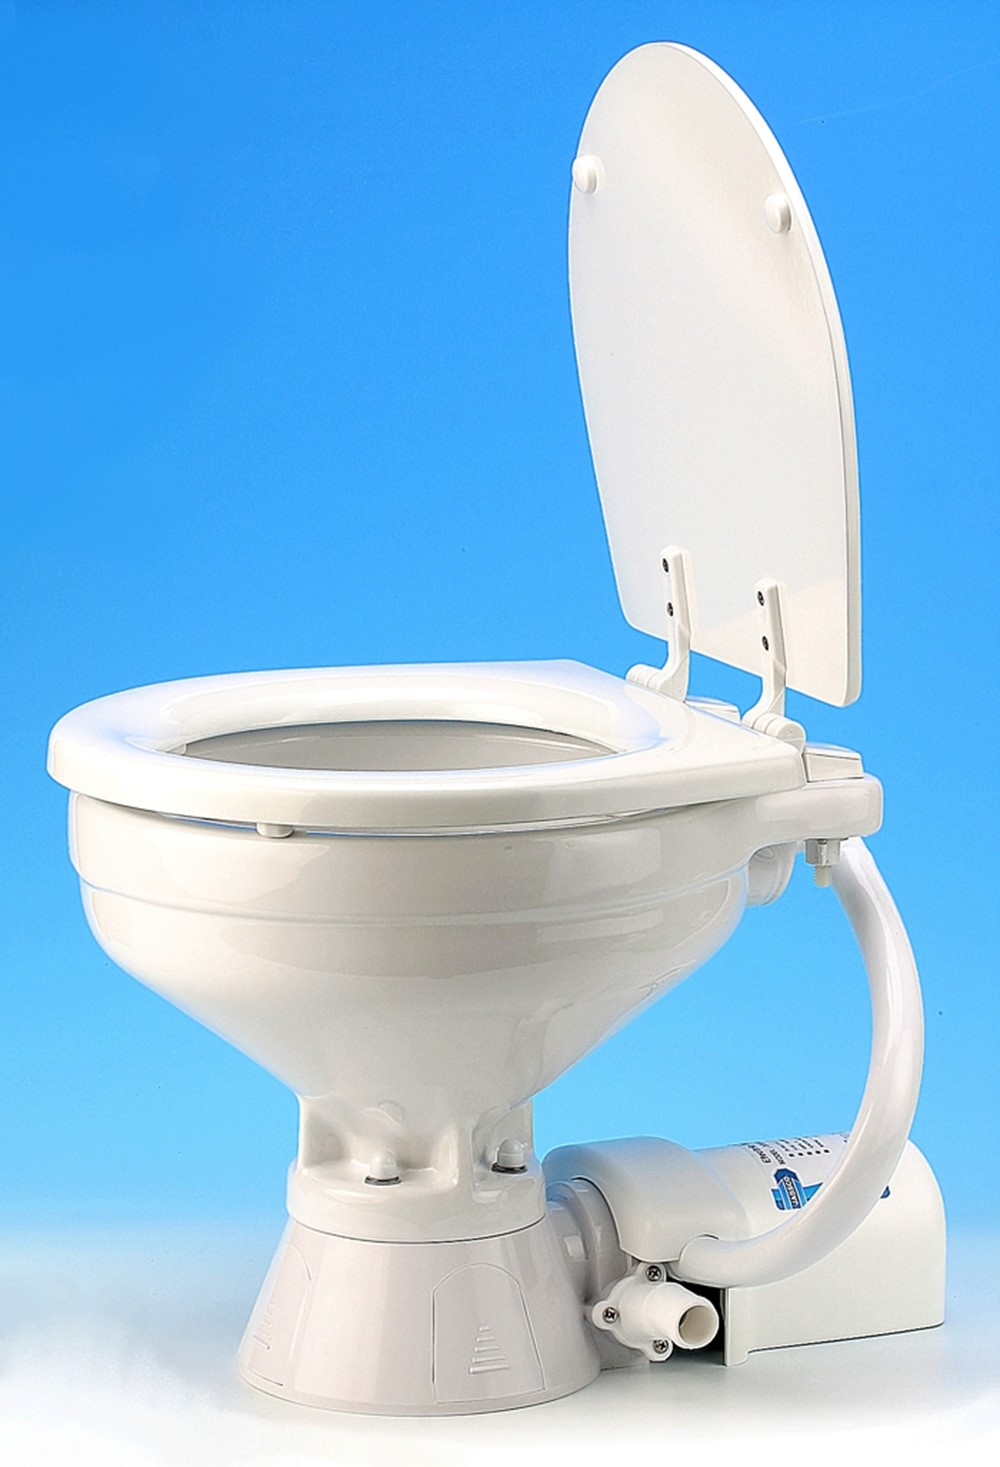 Jabsco 37010-0096 - TOILET 24V - COMPACT BOWL / Electric Toilets ...